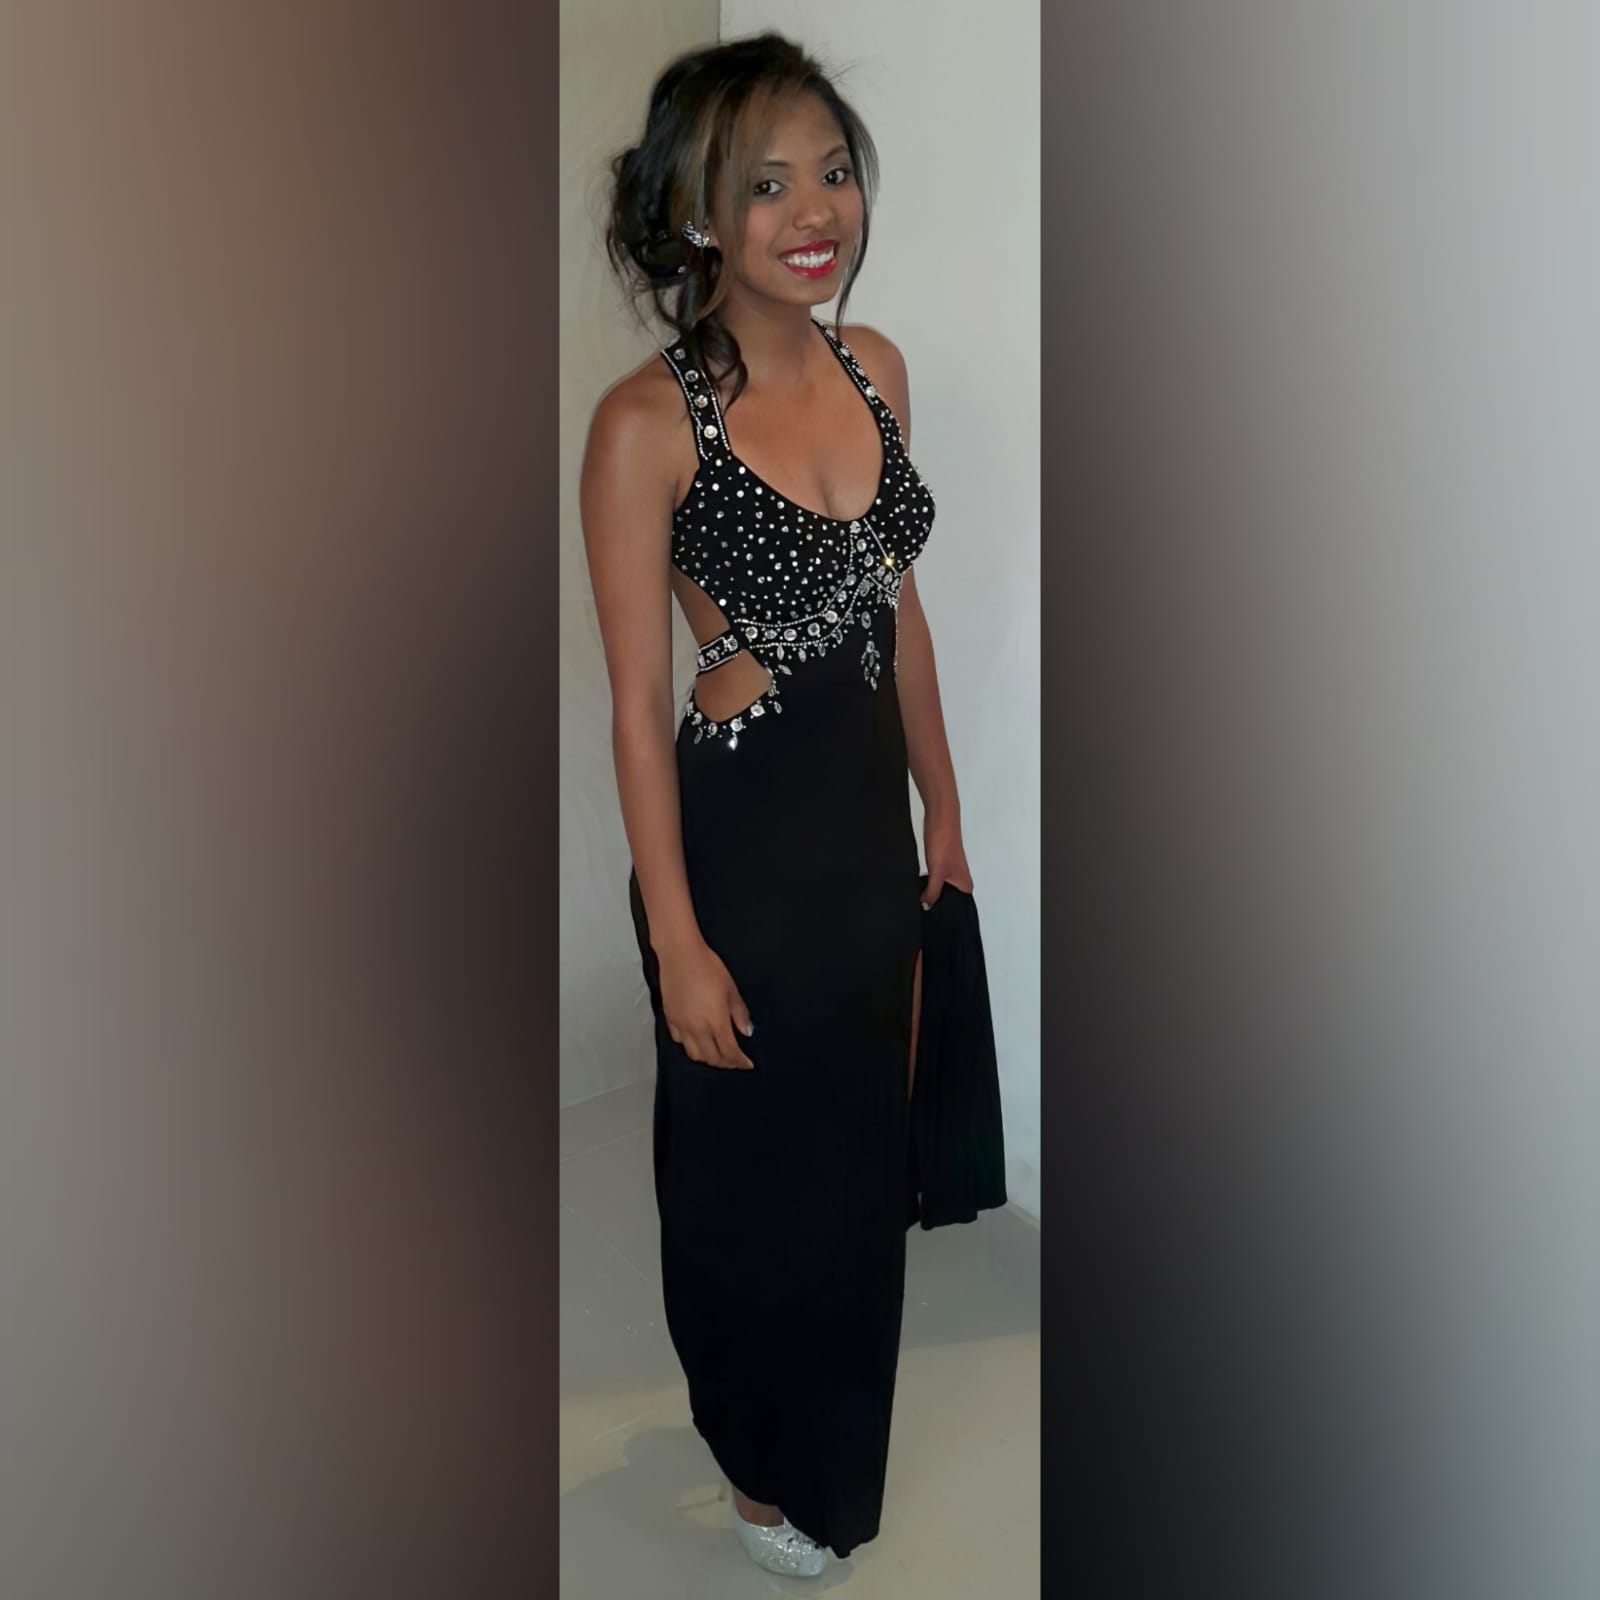 Black and silver prom dress with a low open back 2 black & silver prom dress with a low open back, a slit and train. Slightly open on the side of the tummy. Back straps and bodice detailed with silver beads and diamante